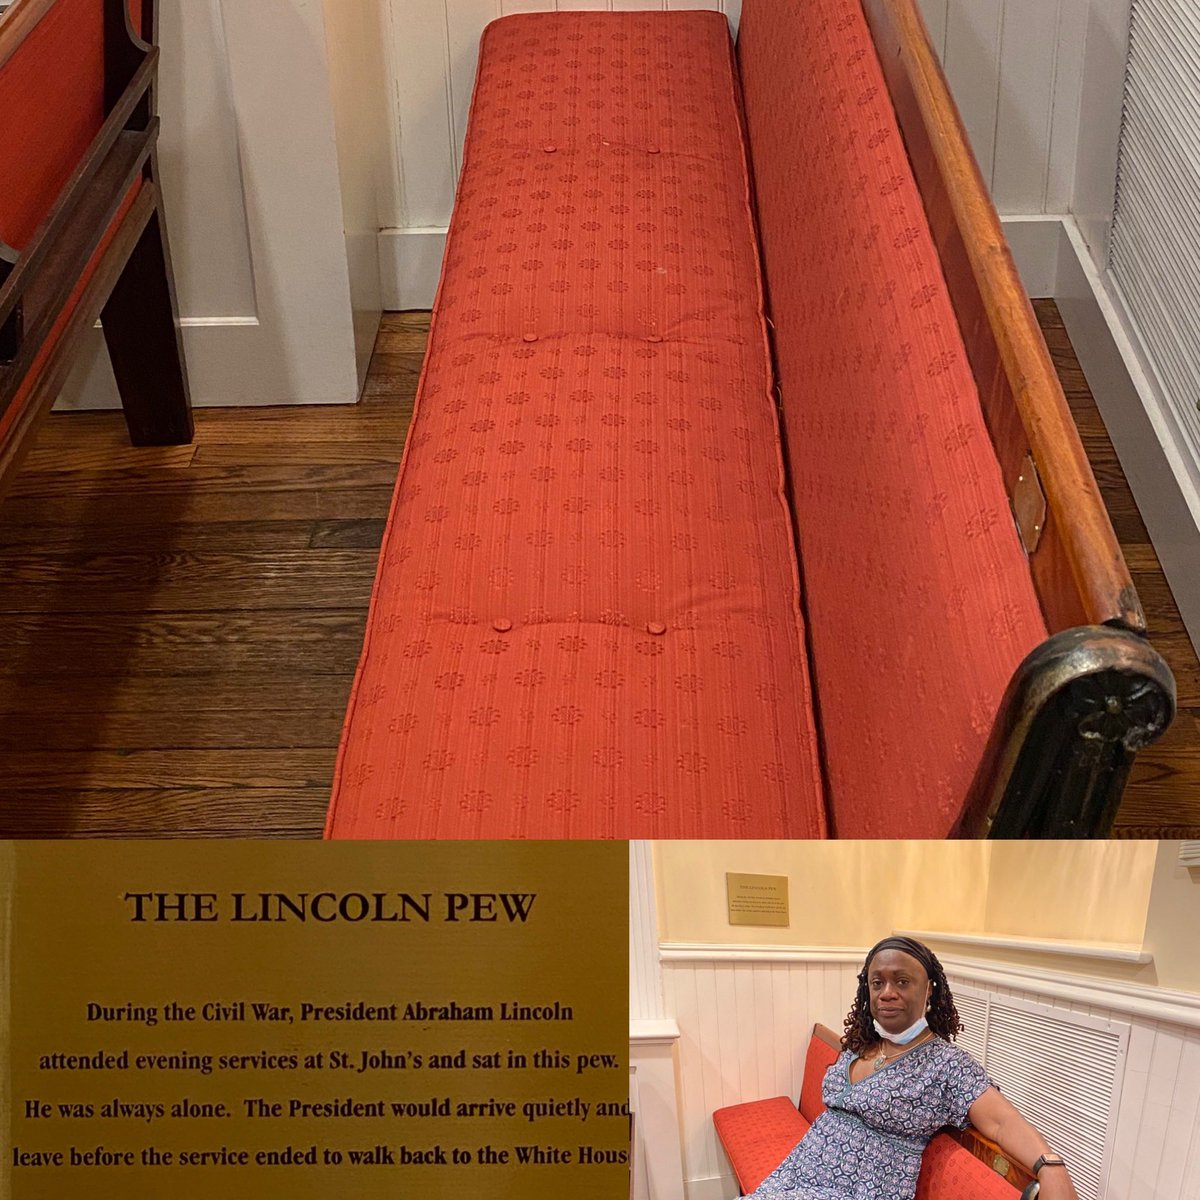 Spent part of today marinating in history. Sat in the #StJohnsChurch pew that President Lincoln occupied when he could make it to Sunday services. Wondered what he would think about where we are now.  @StJohnLafayette @NatGeo https://t.co/iPGZAeE7rh